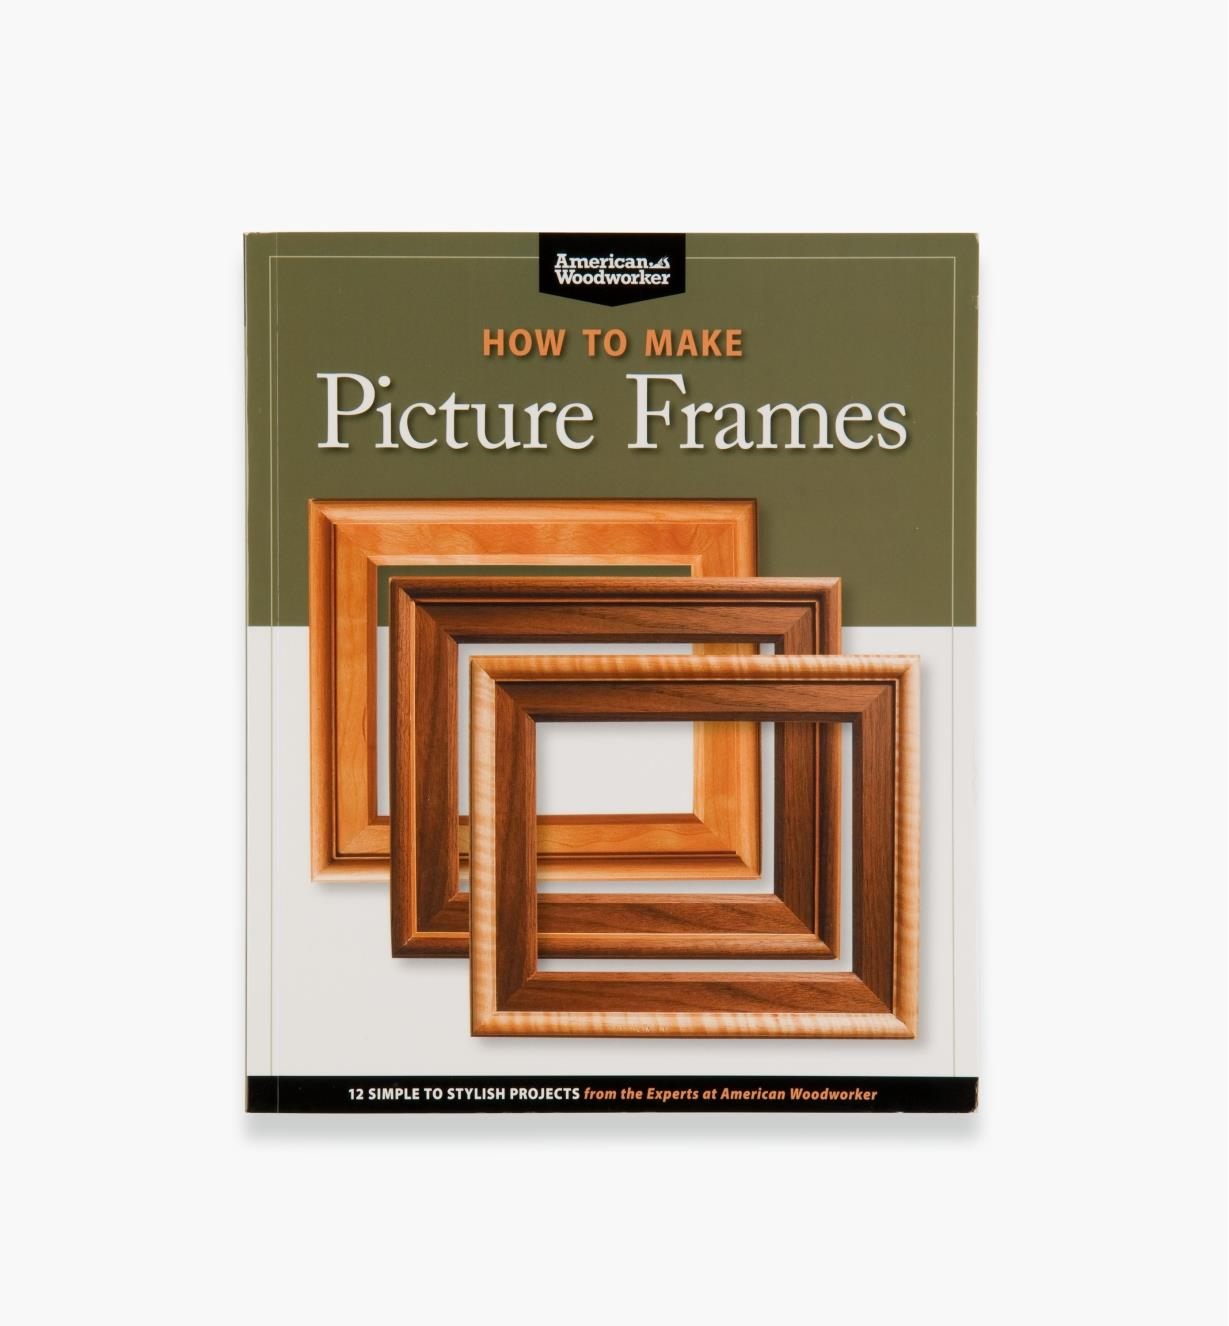 49L5068 - How to Make Picture Frames